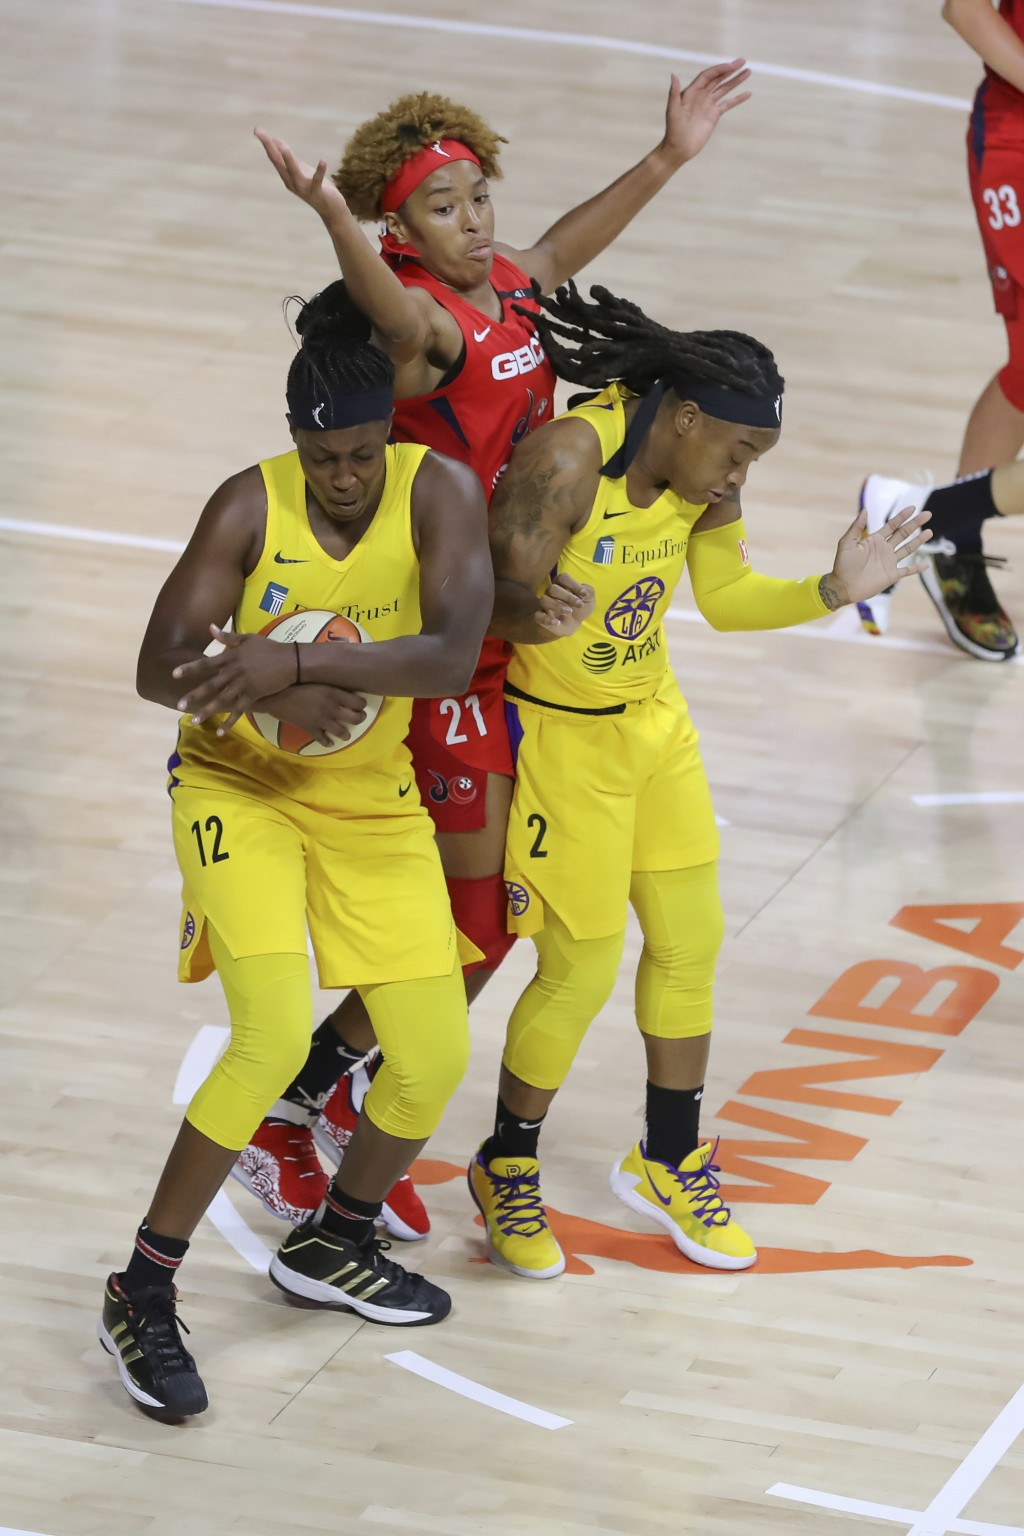 Los Angeles Sparks' Chelsea Gray (12) steals a pass intended for Washington Mystics' Tianna Hawkins (21) as Sparks' Riquna Williams (2) defends during...